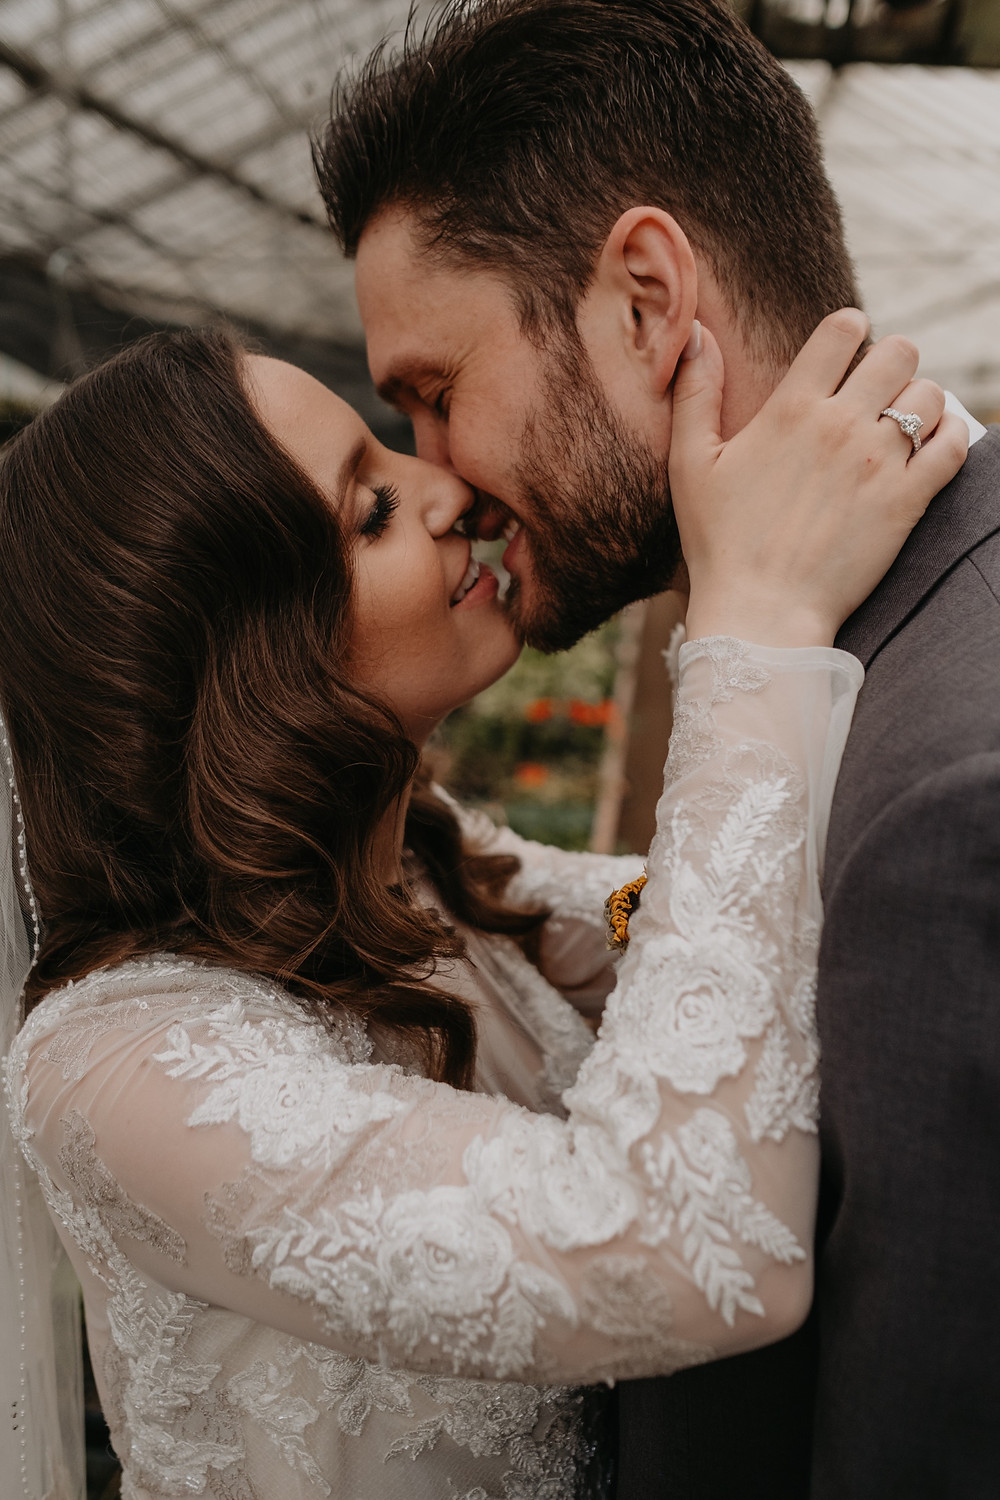 Wedding day kiss with bride and groom. Photographed by Nicole Leanne Photography.